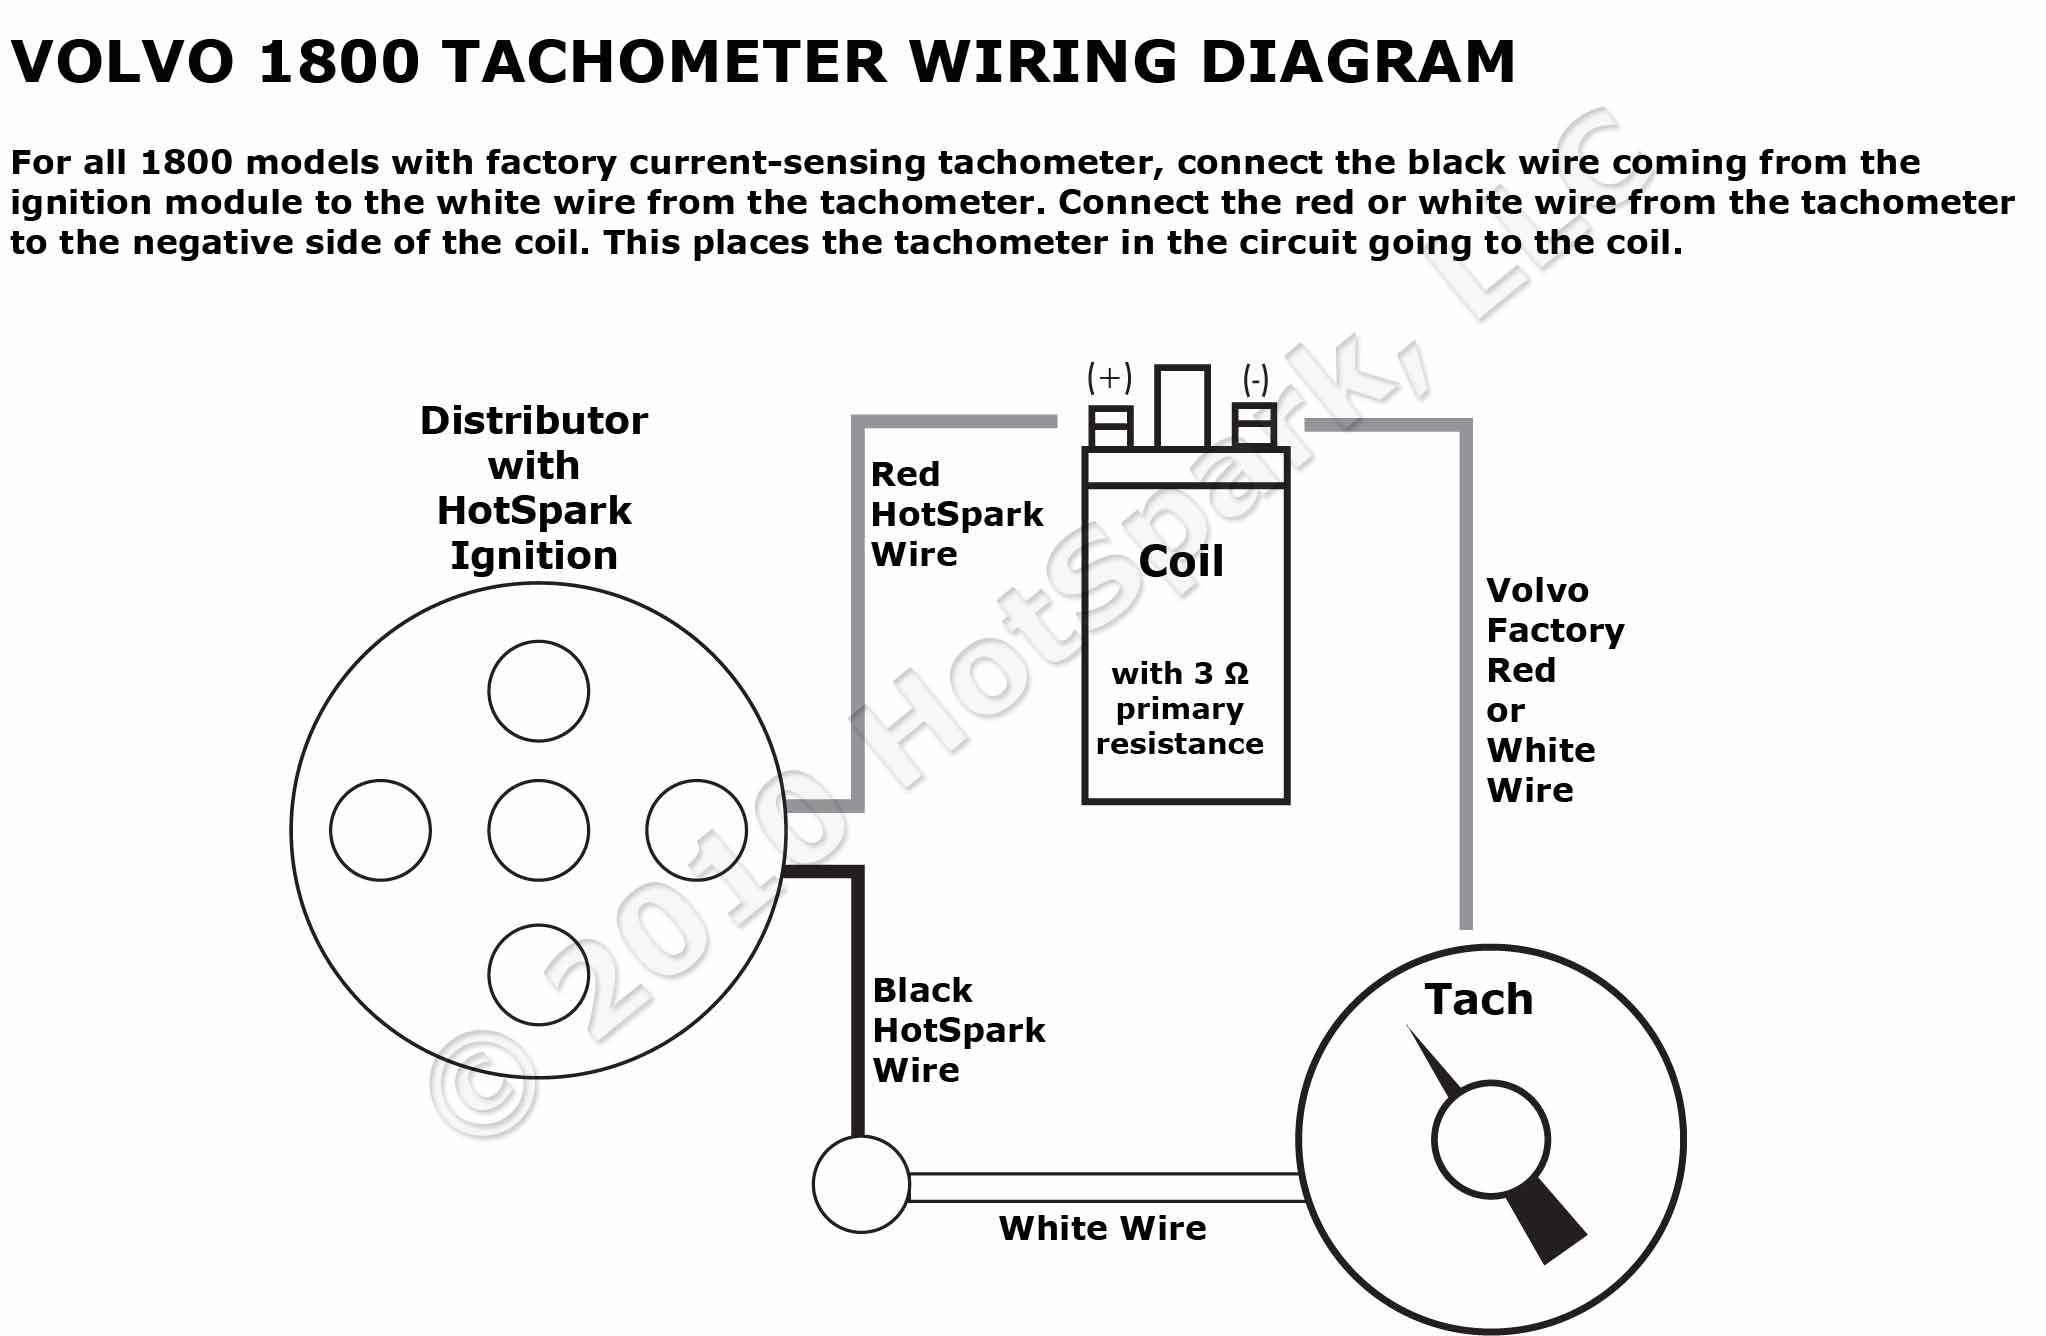 Volvo 1800 Tachometer and Hot Spark Wiring Diagram tach wiring diagram autometer tach wiring diagram \u2022 wiring pro comp distributor wiring diagram at mifinder.co